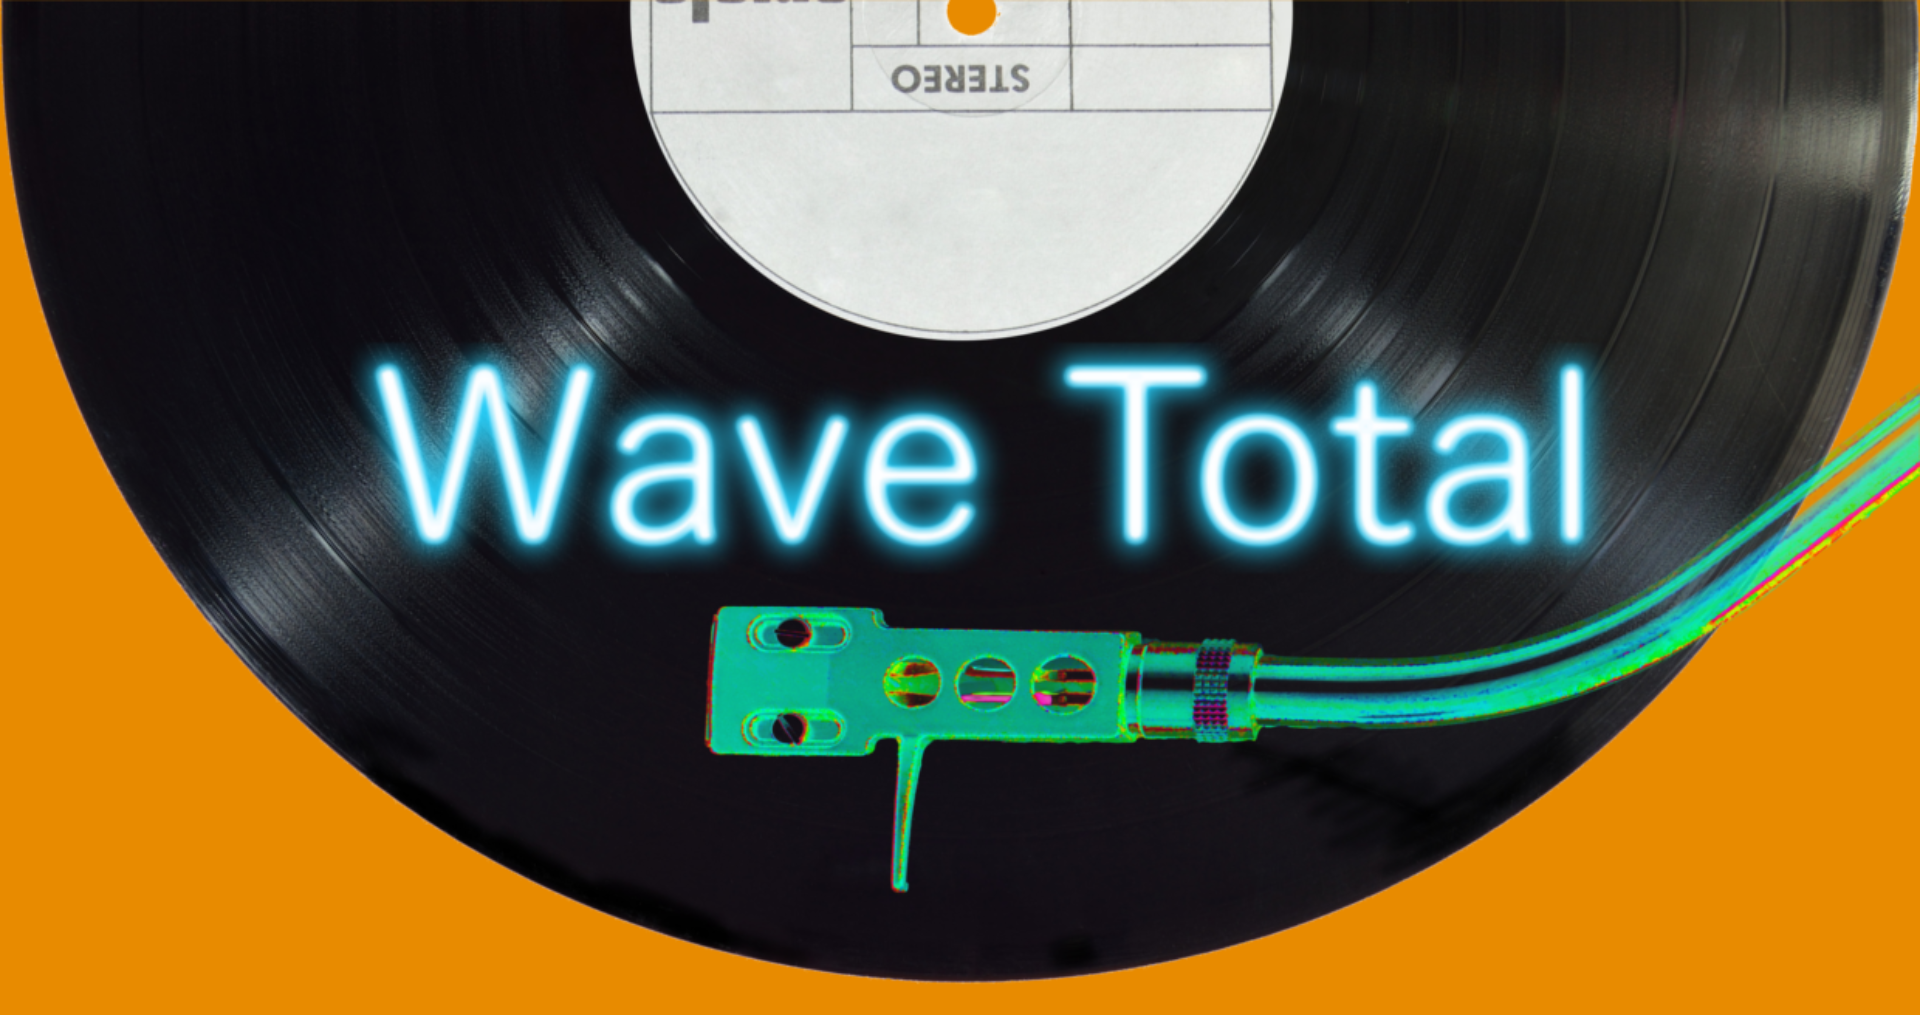 Wave Total